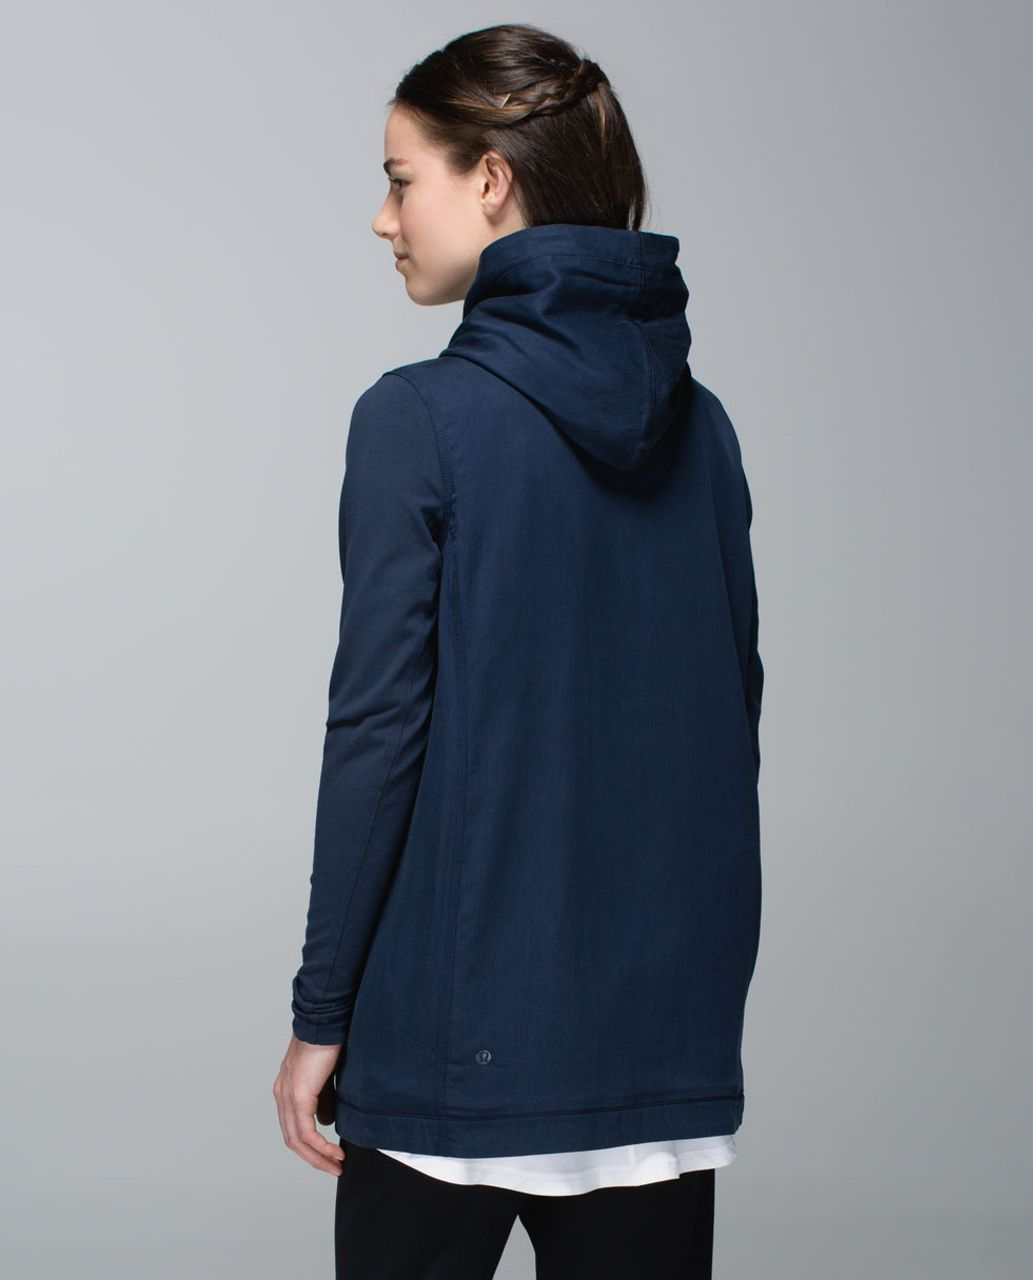 Lululemon Blissed Out Wrap - Inkwell